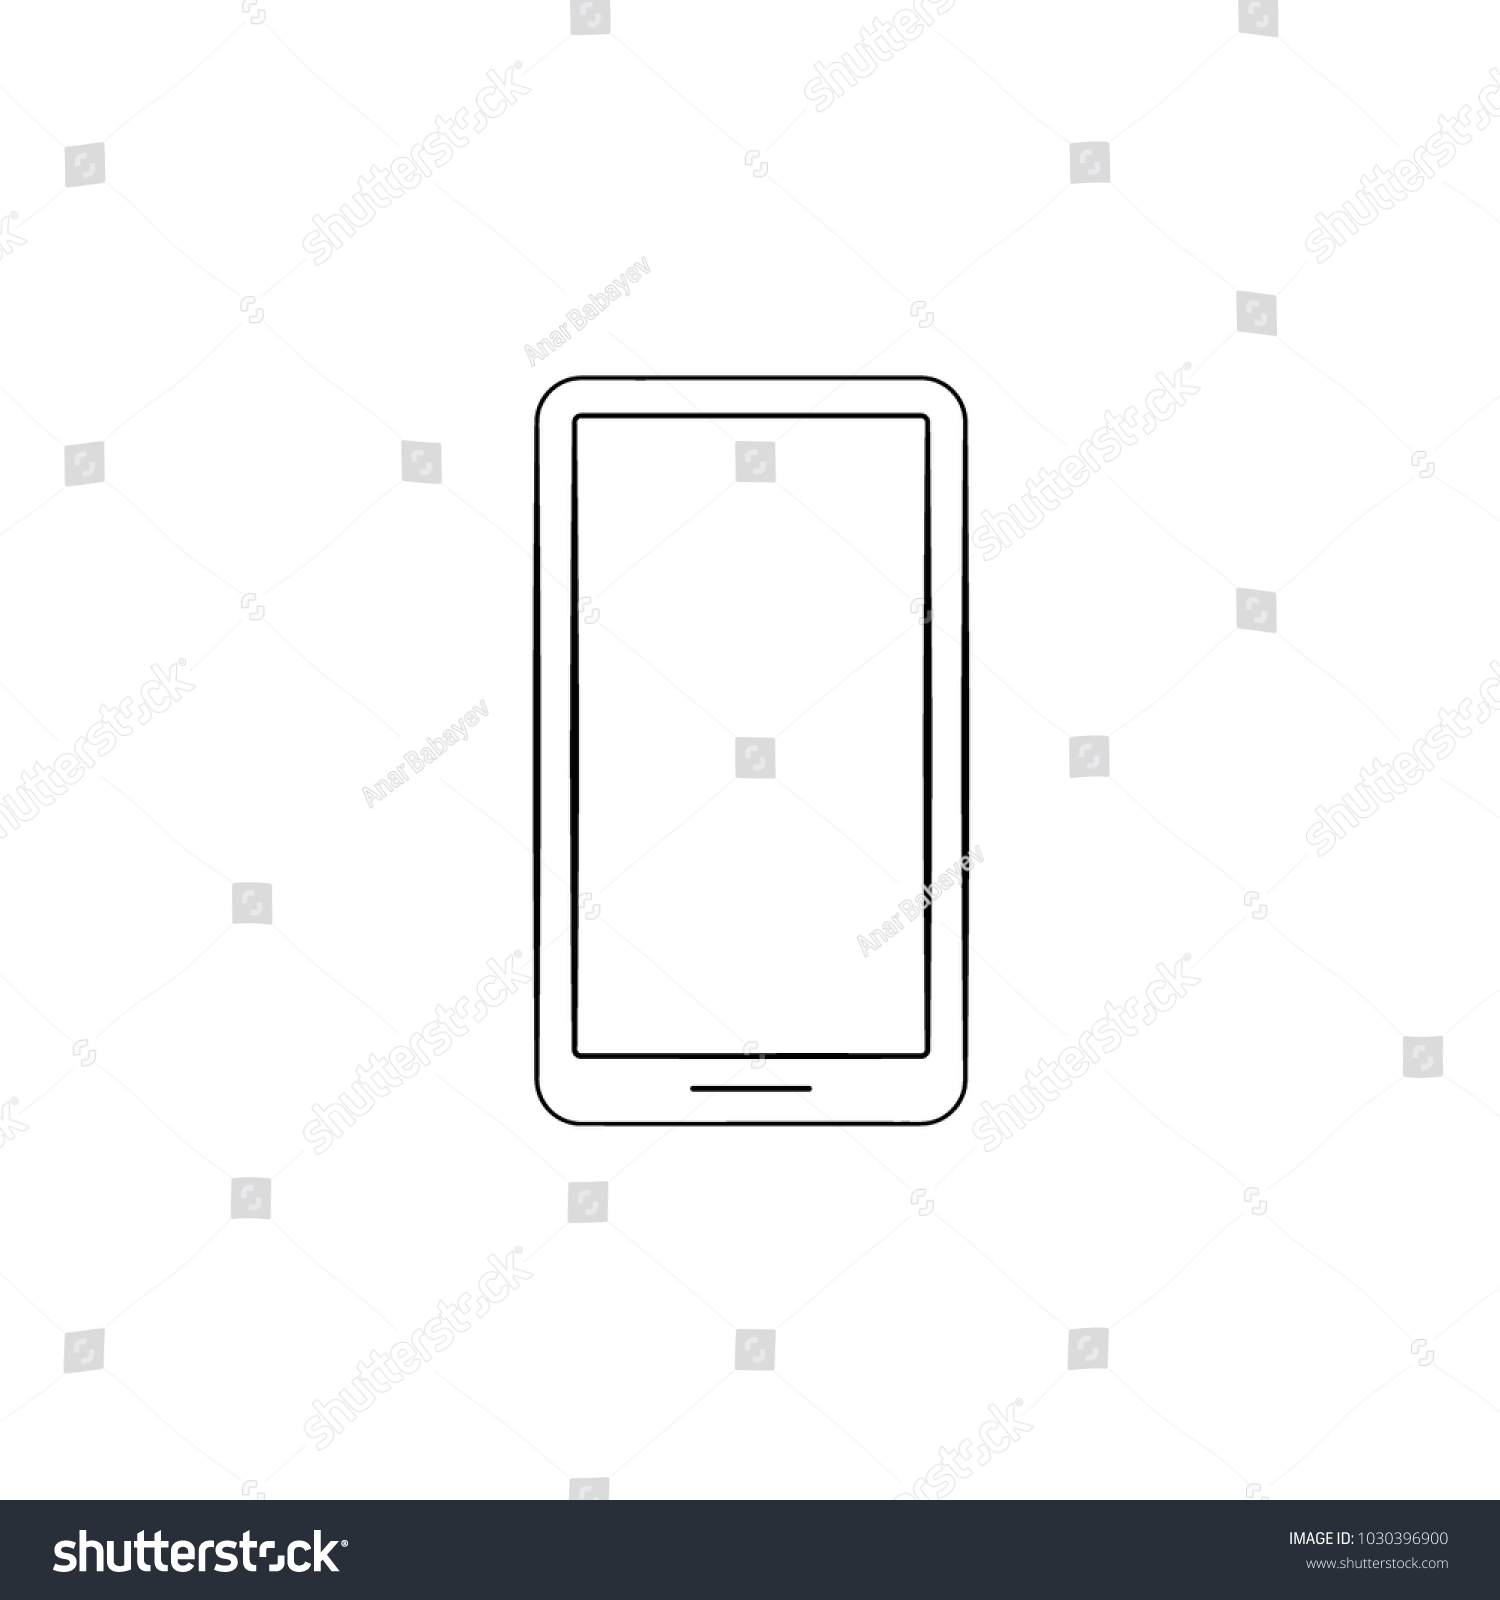 Mobile phone icon element electrical devices stock vector element of electrical devices icon premium quality graphic design signs biocorpaavc Images